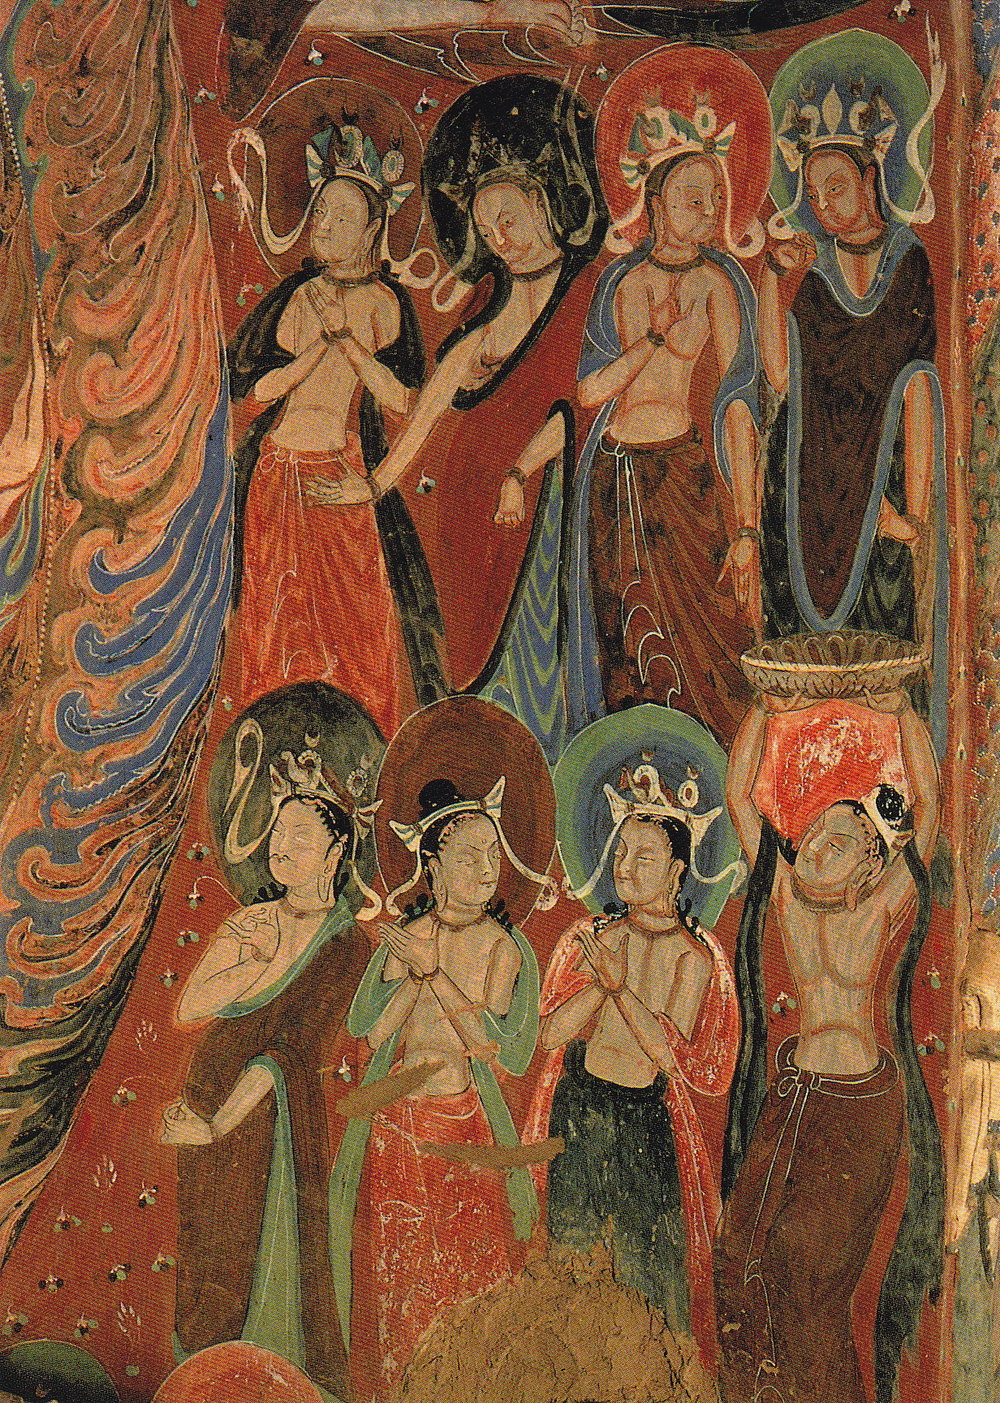 Unknown ancient Buddhist artist(s),  Cave mural of Worshiping Bodhisattva (24 February 2010). Public Domain.